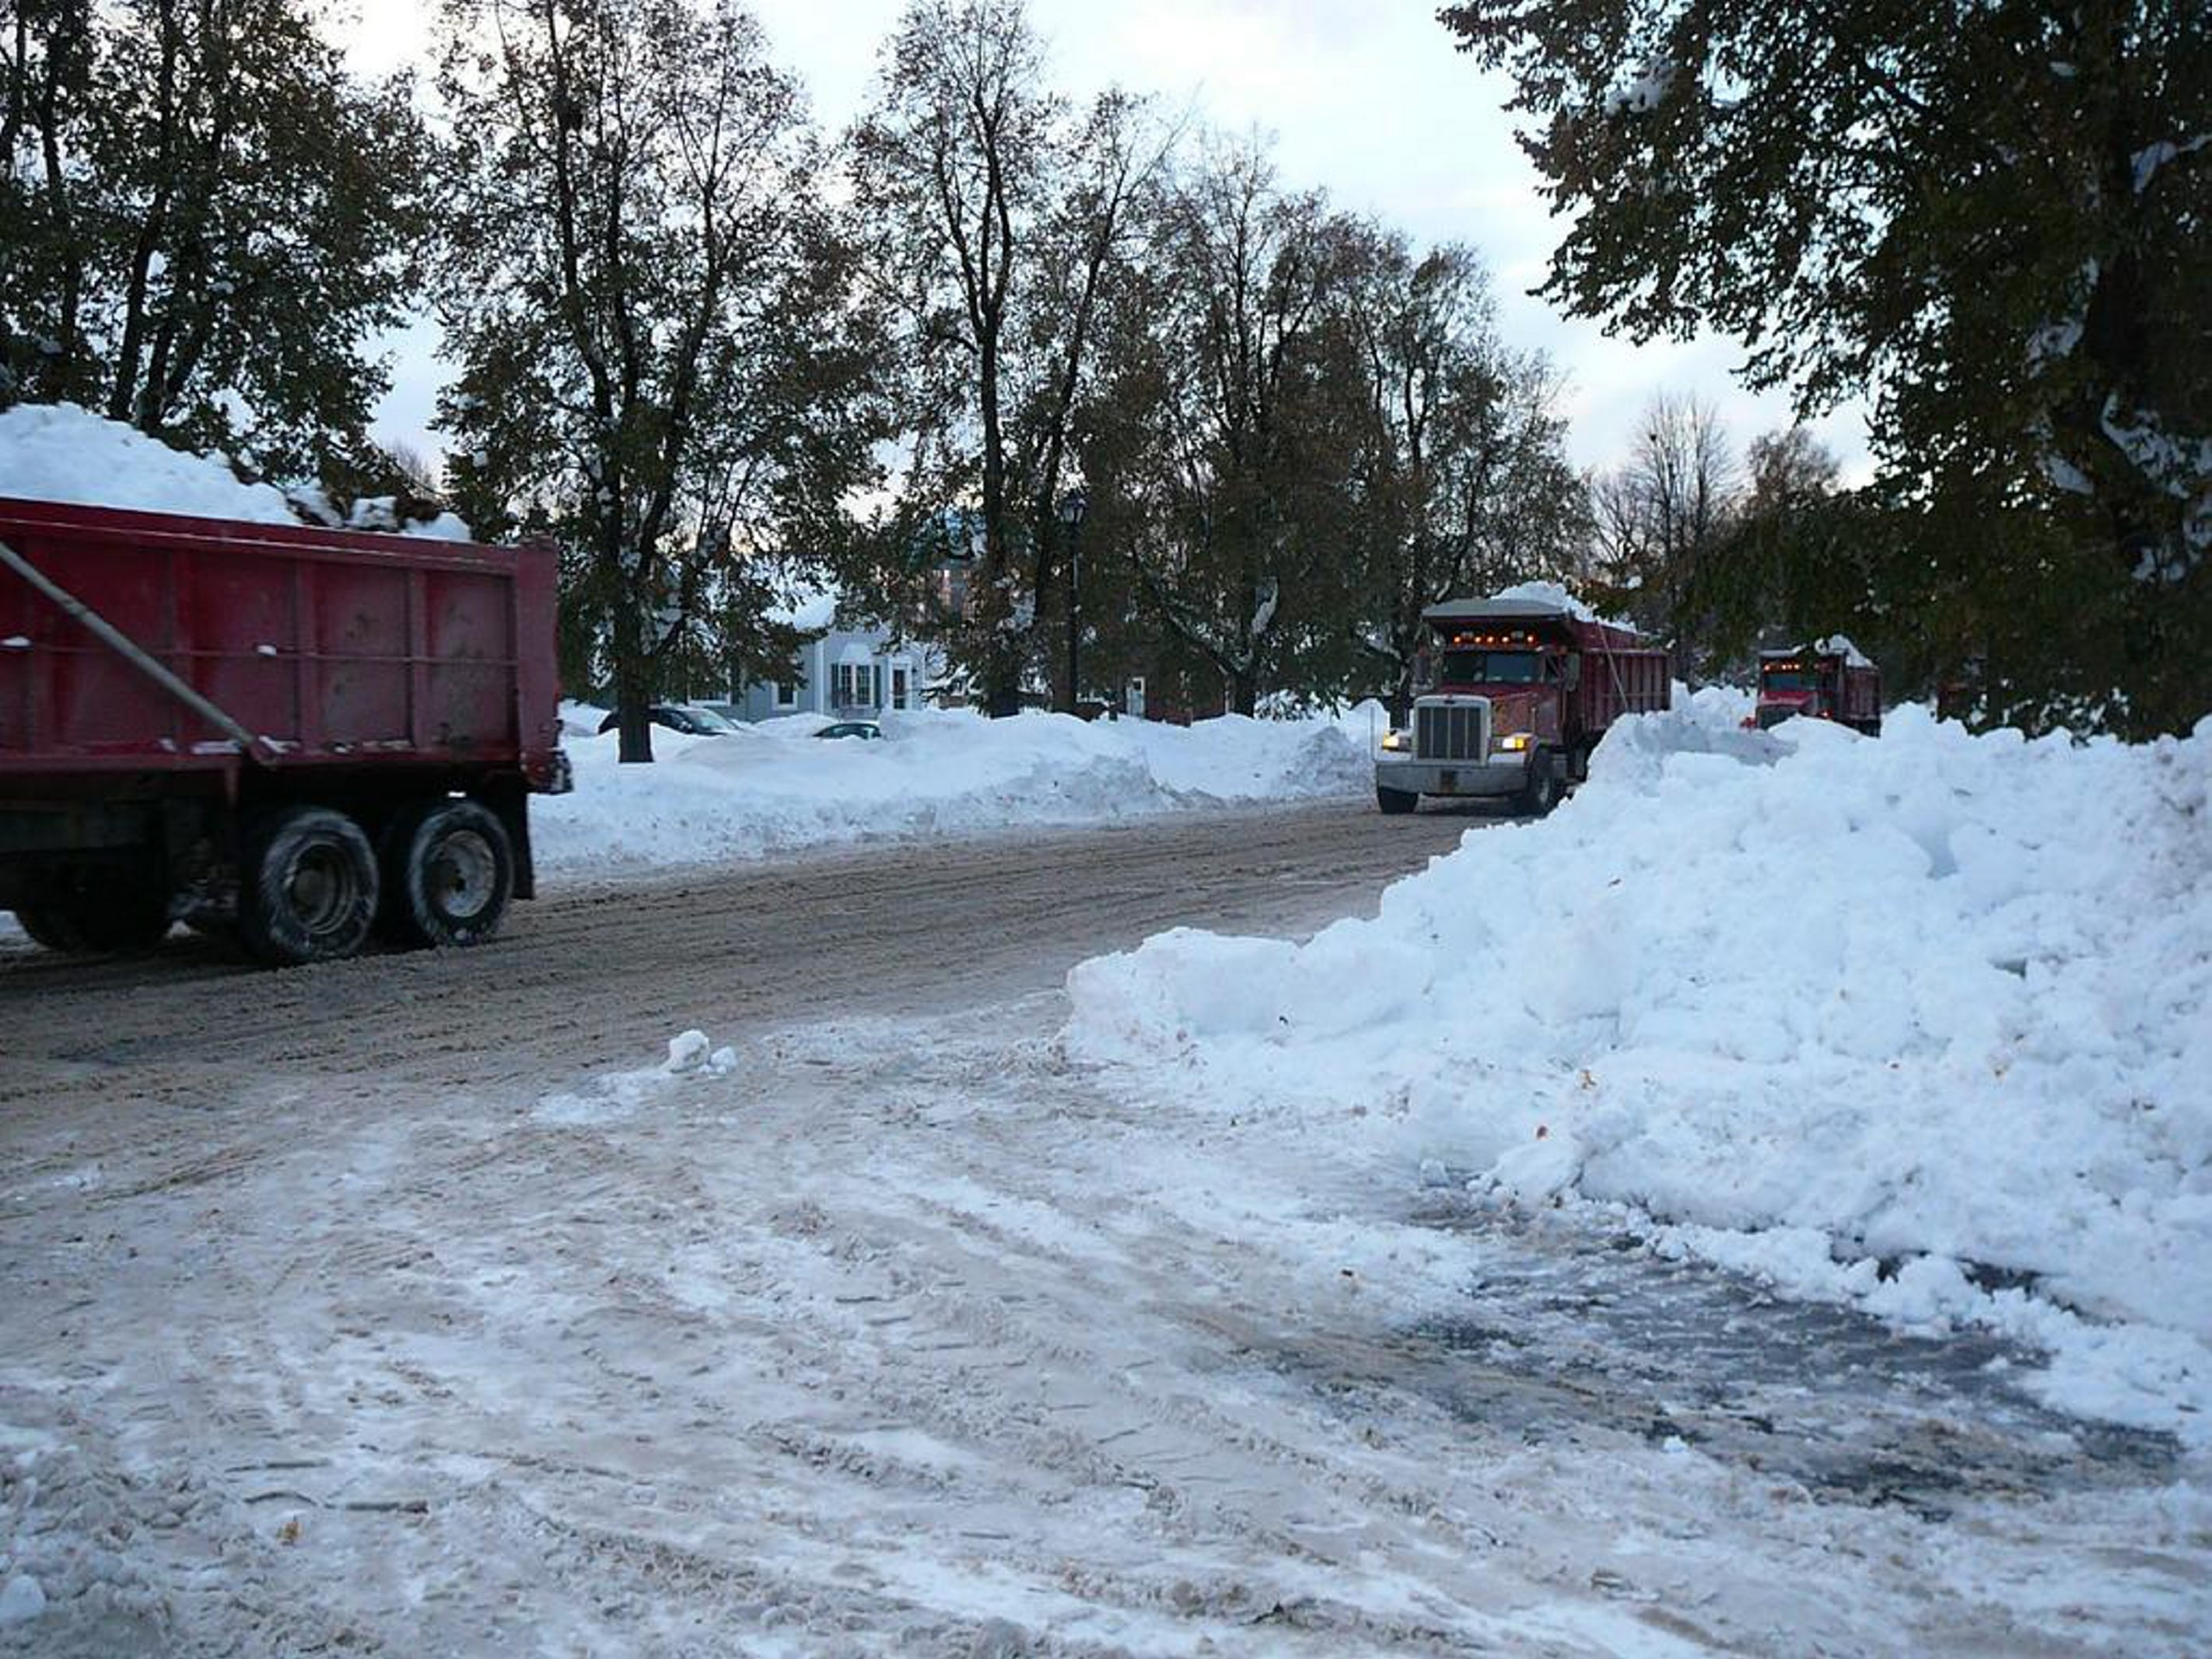 Five dump trucks filled with snow travel on McKinley Parkway and Eden Street in South Buffalo early Saturday morning. A travel ban is still in place for South Buffalo. (Toni Ruberto)